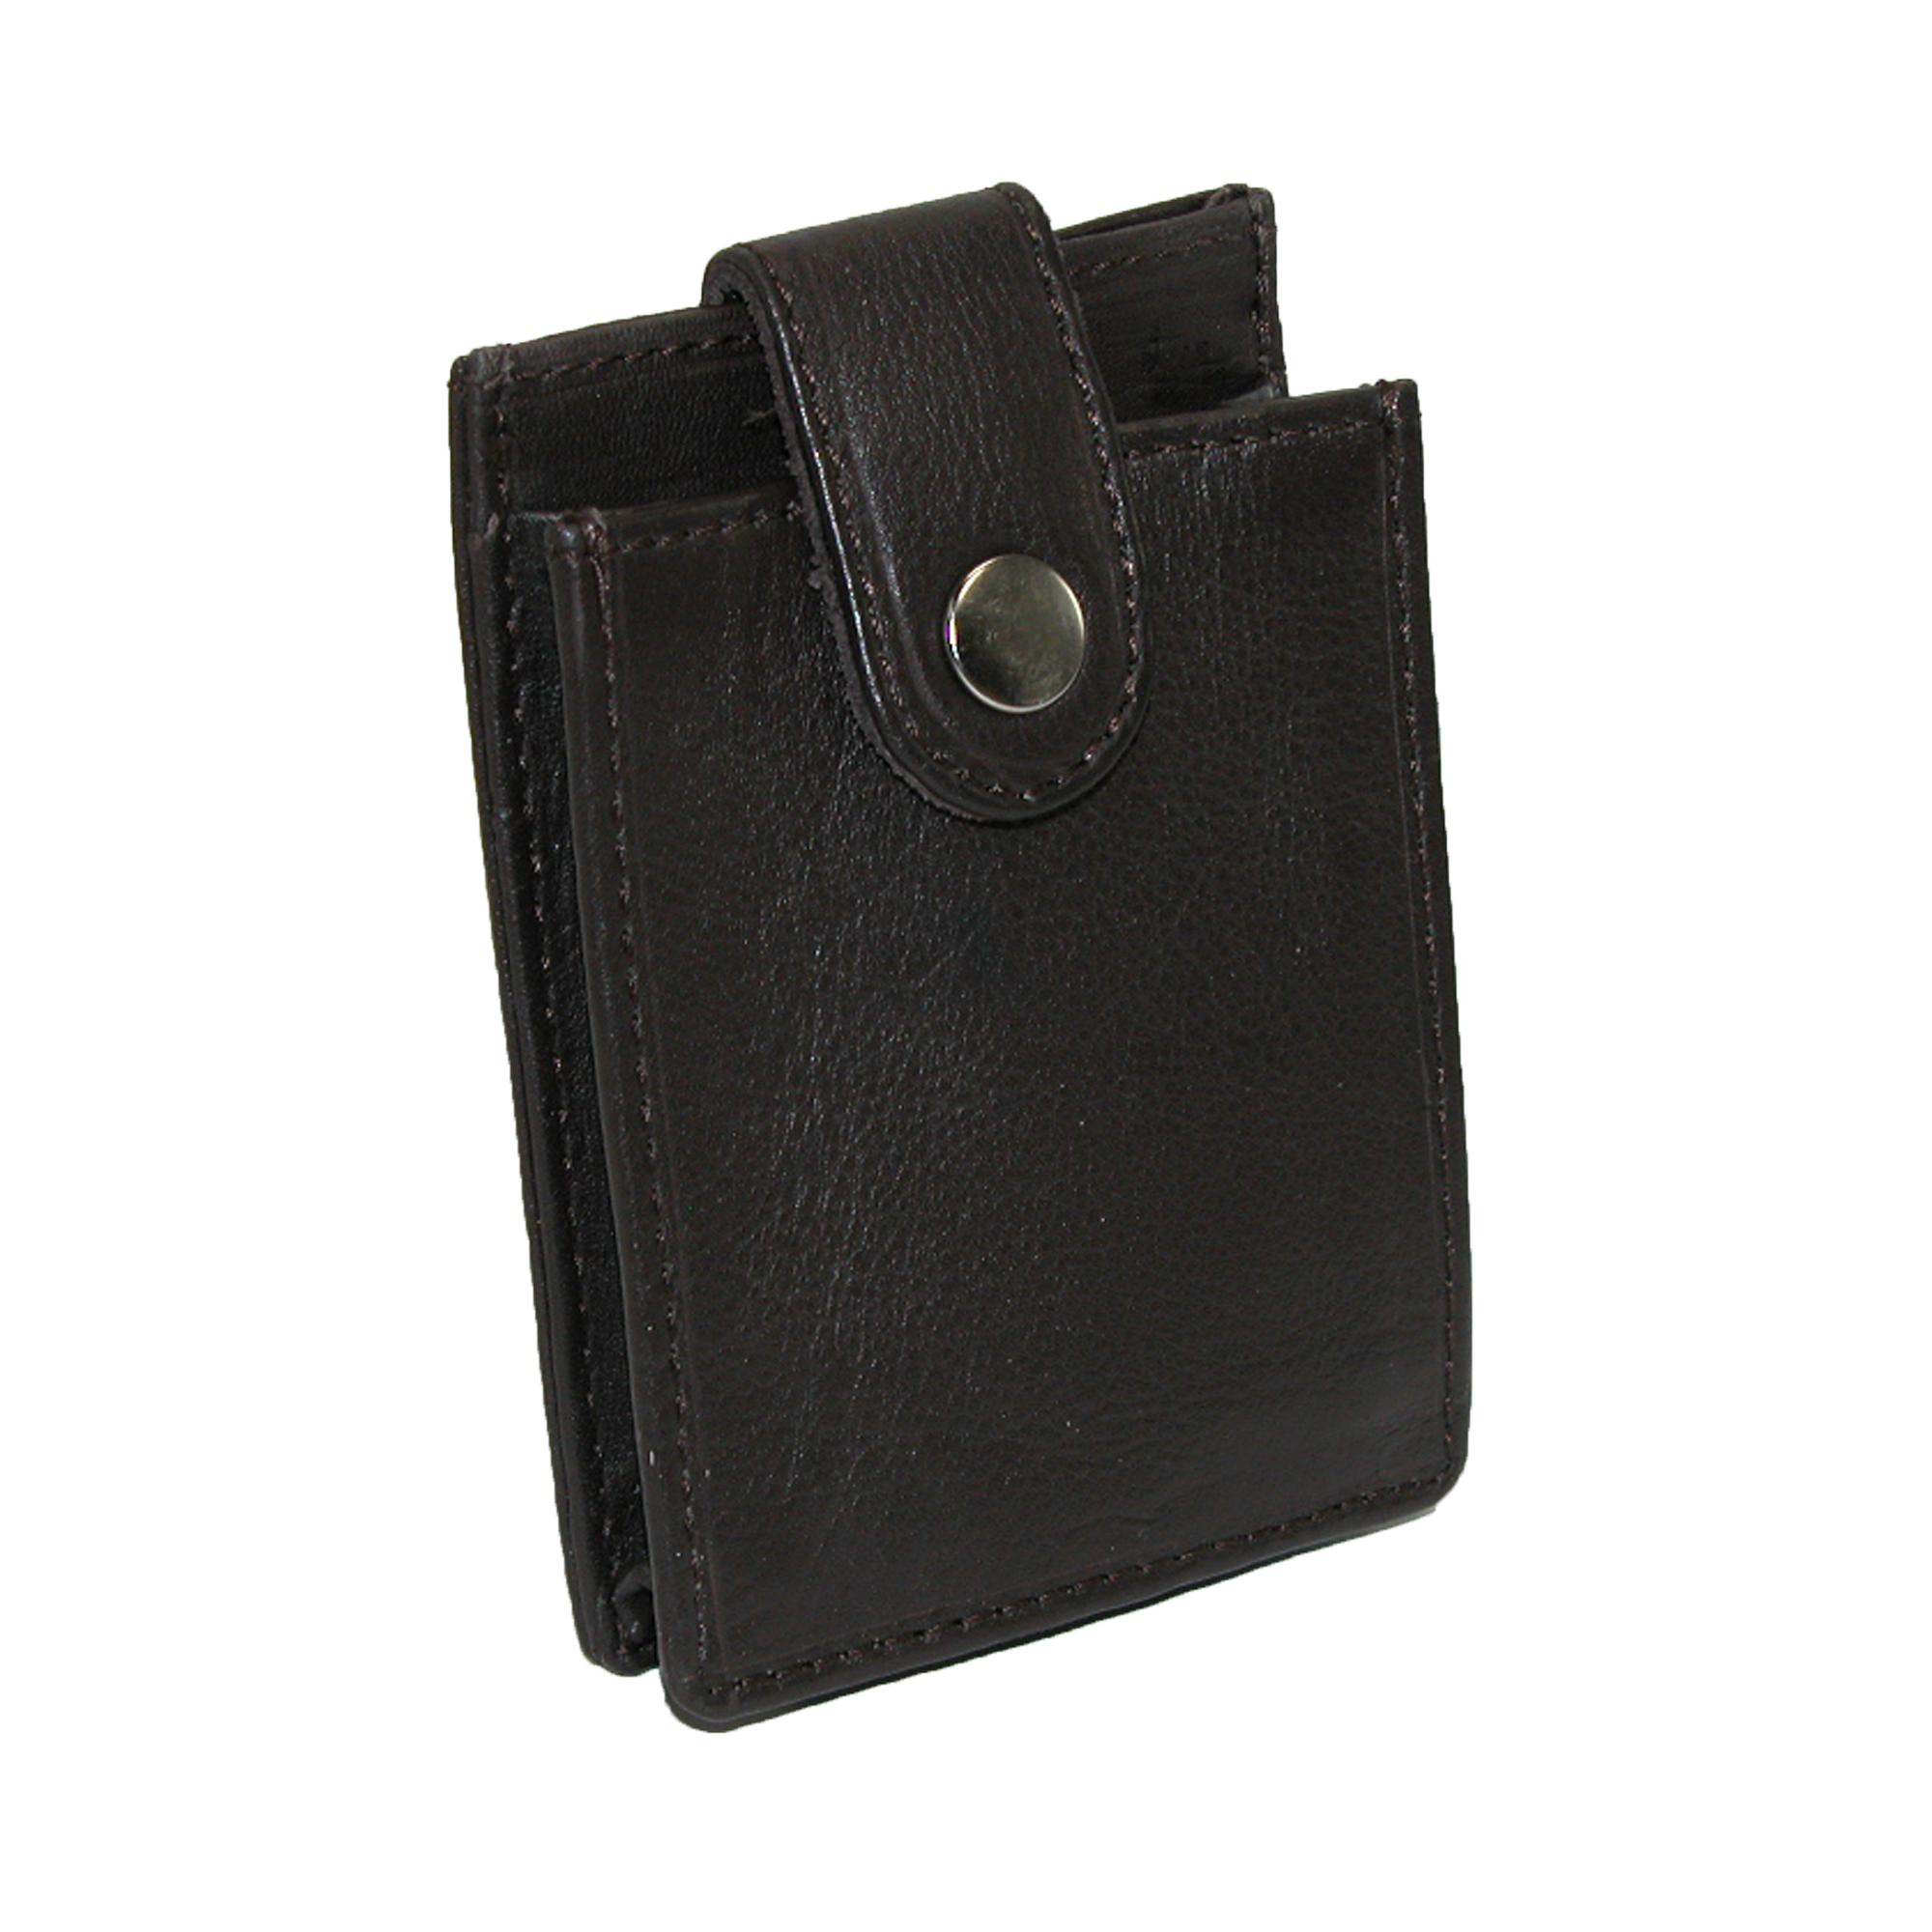 Paul_&_Taylor_Men's_Leather_Money_Clip_and_Expandable_Card_Holder_-